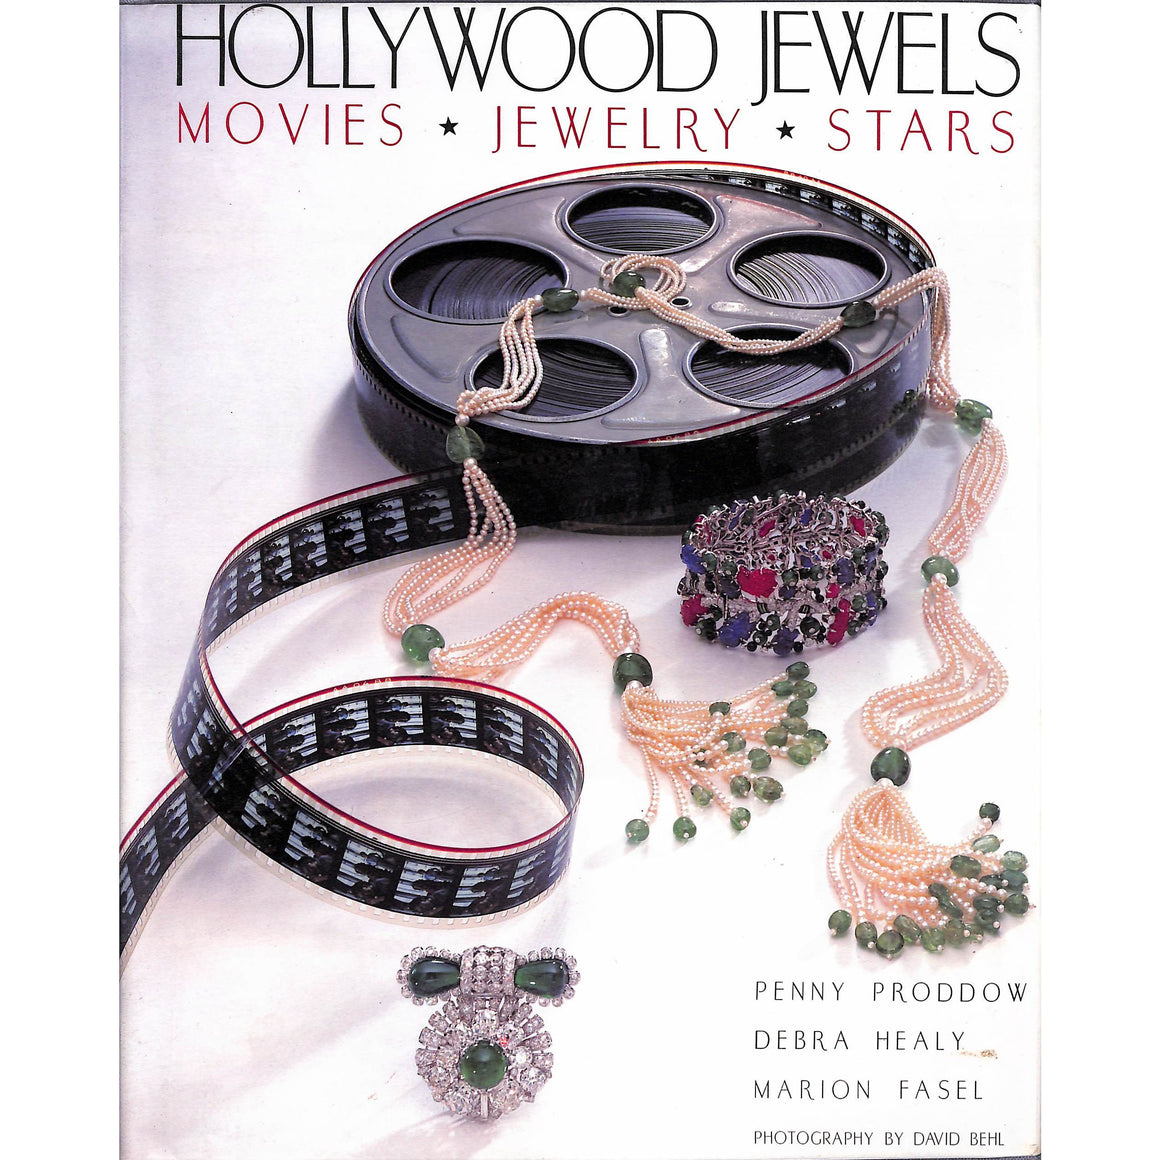 Hollywood Jewels: Movies, Jewelry, Stars